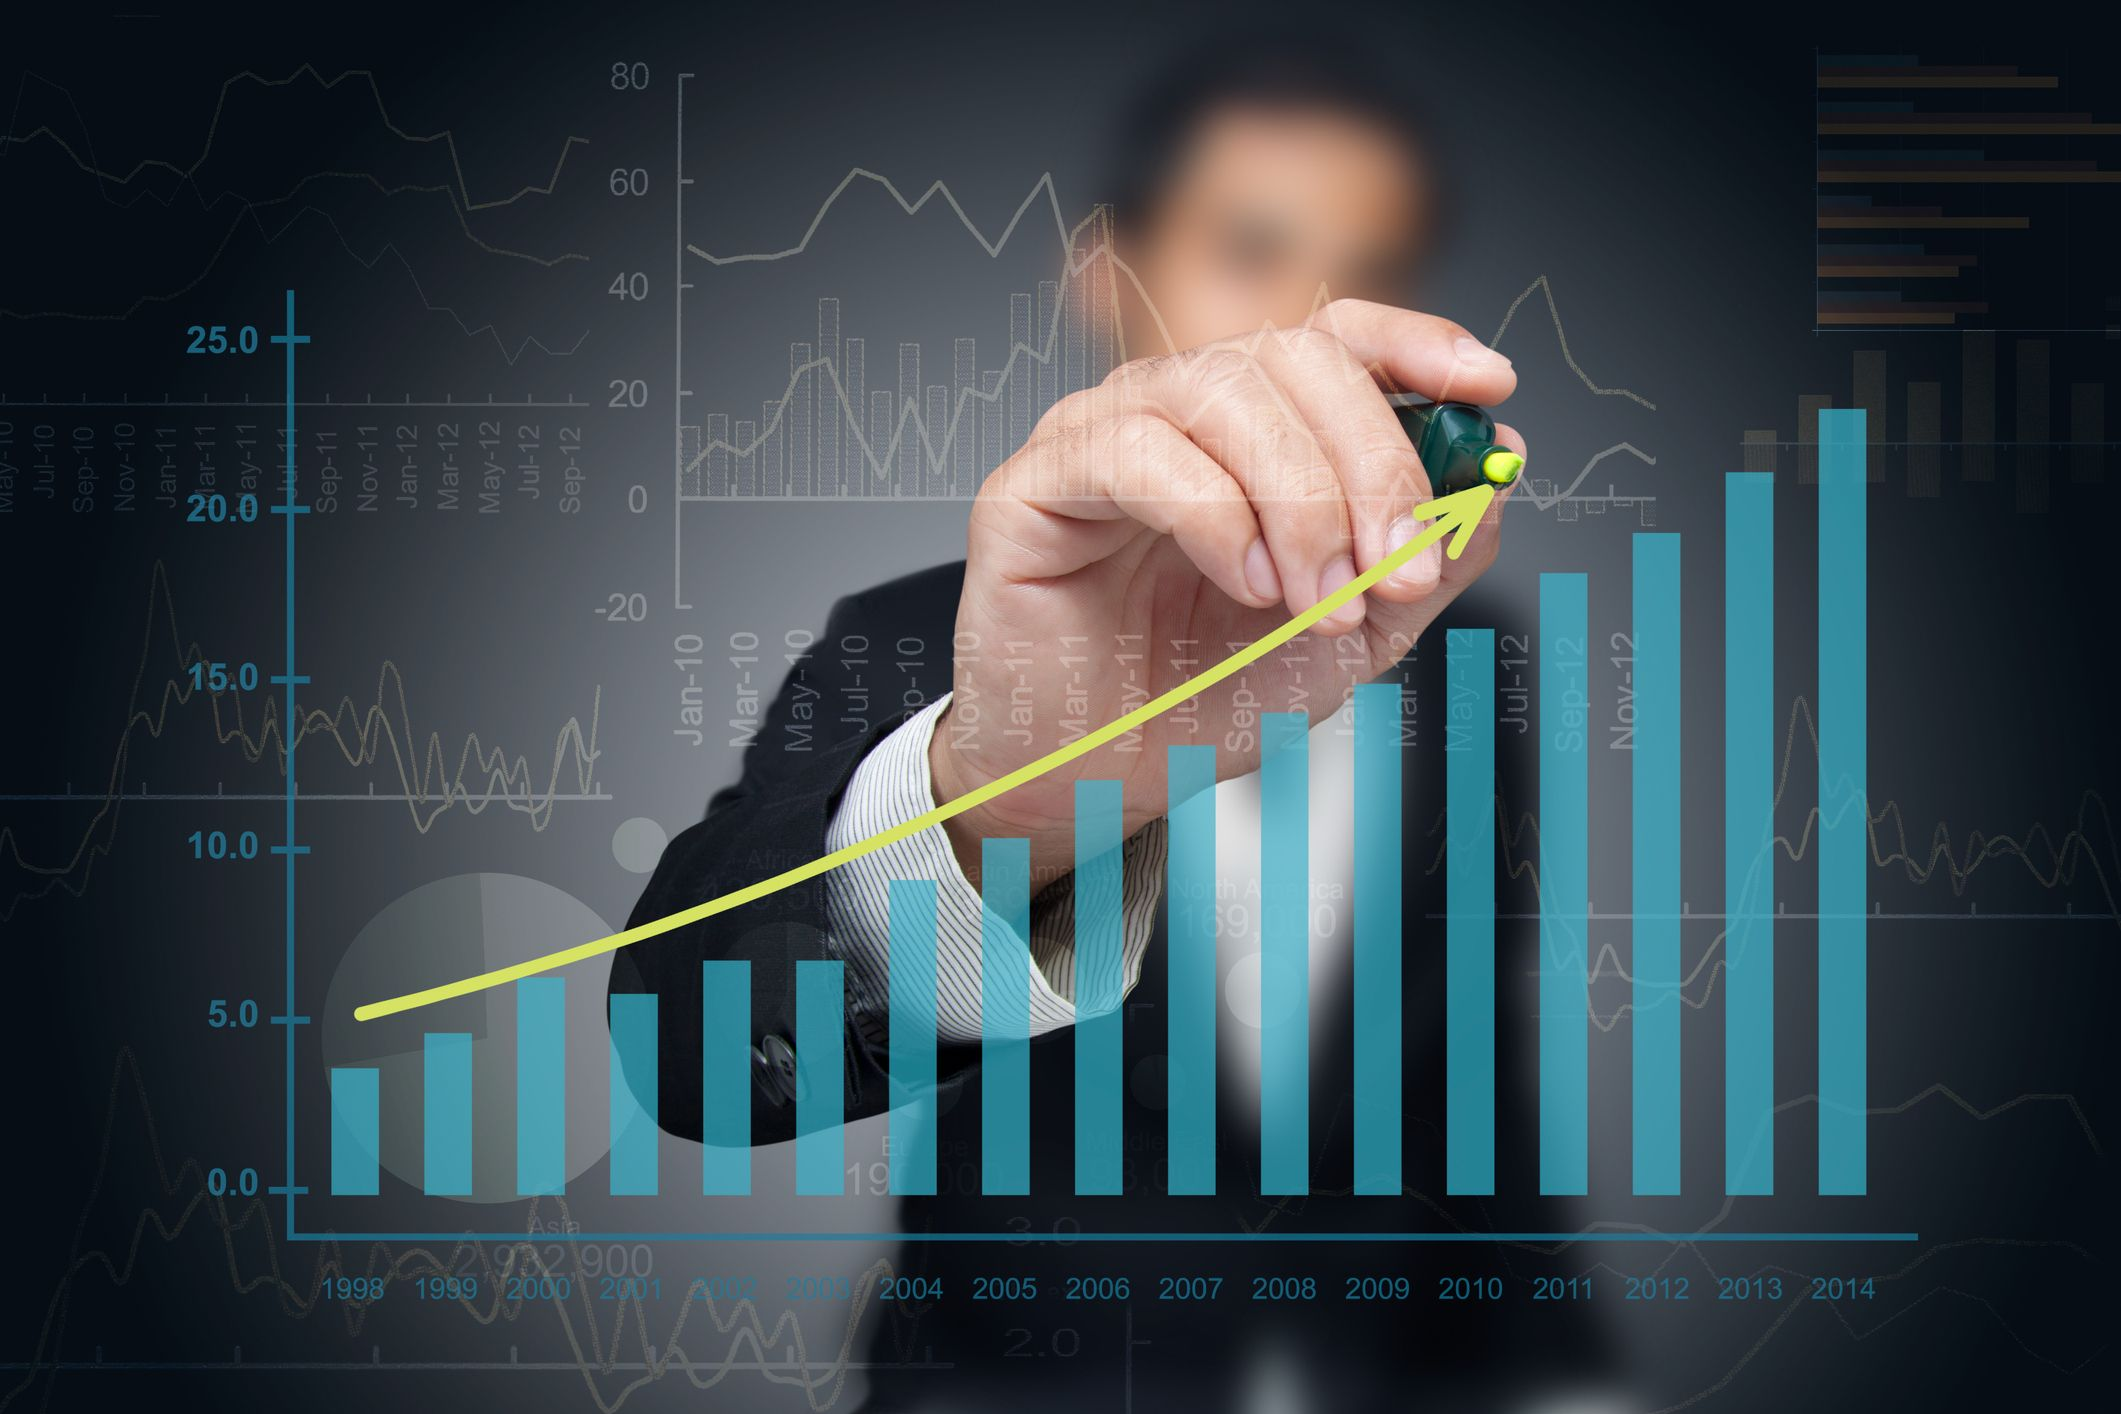 3 Growth Stocks to Buy and Hold for the Next 50 Years